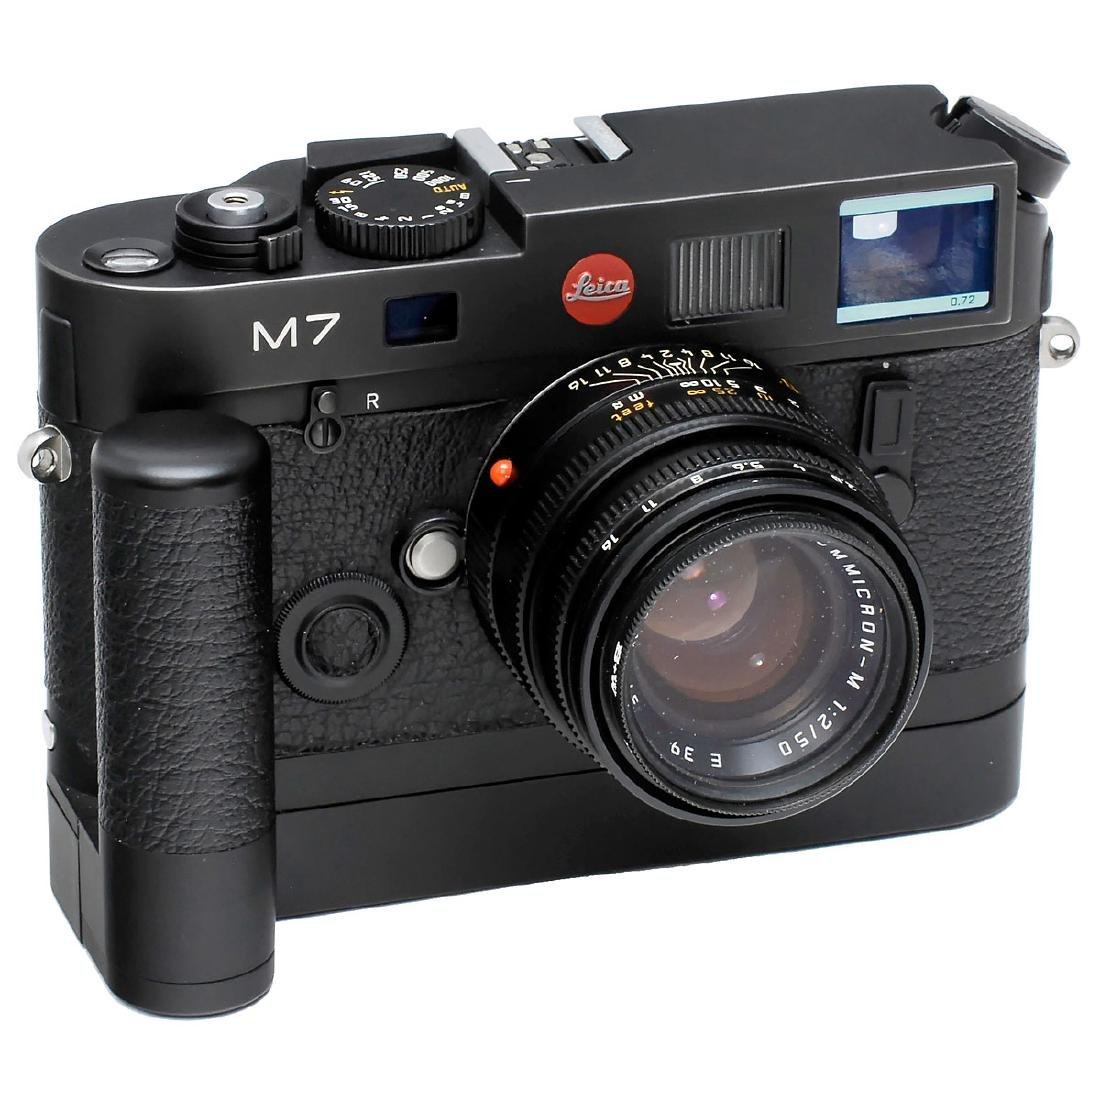 Leica M7 with Summicron-M 2/50